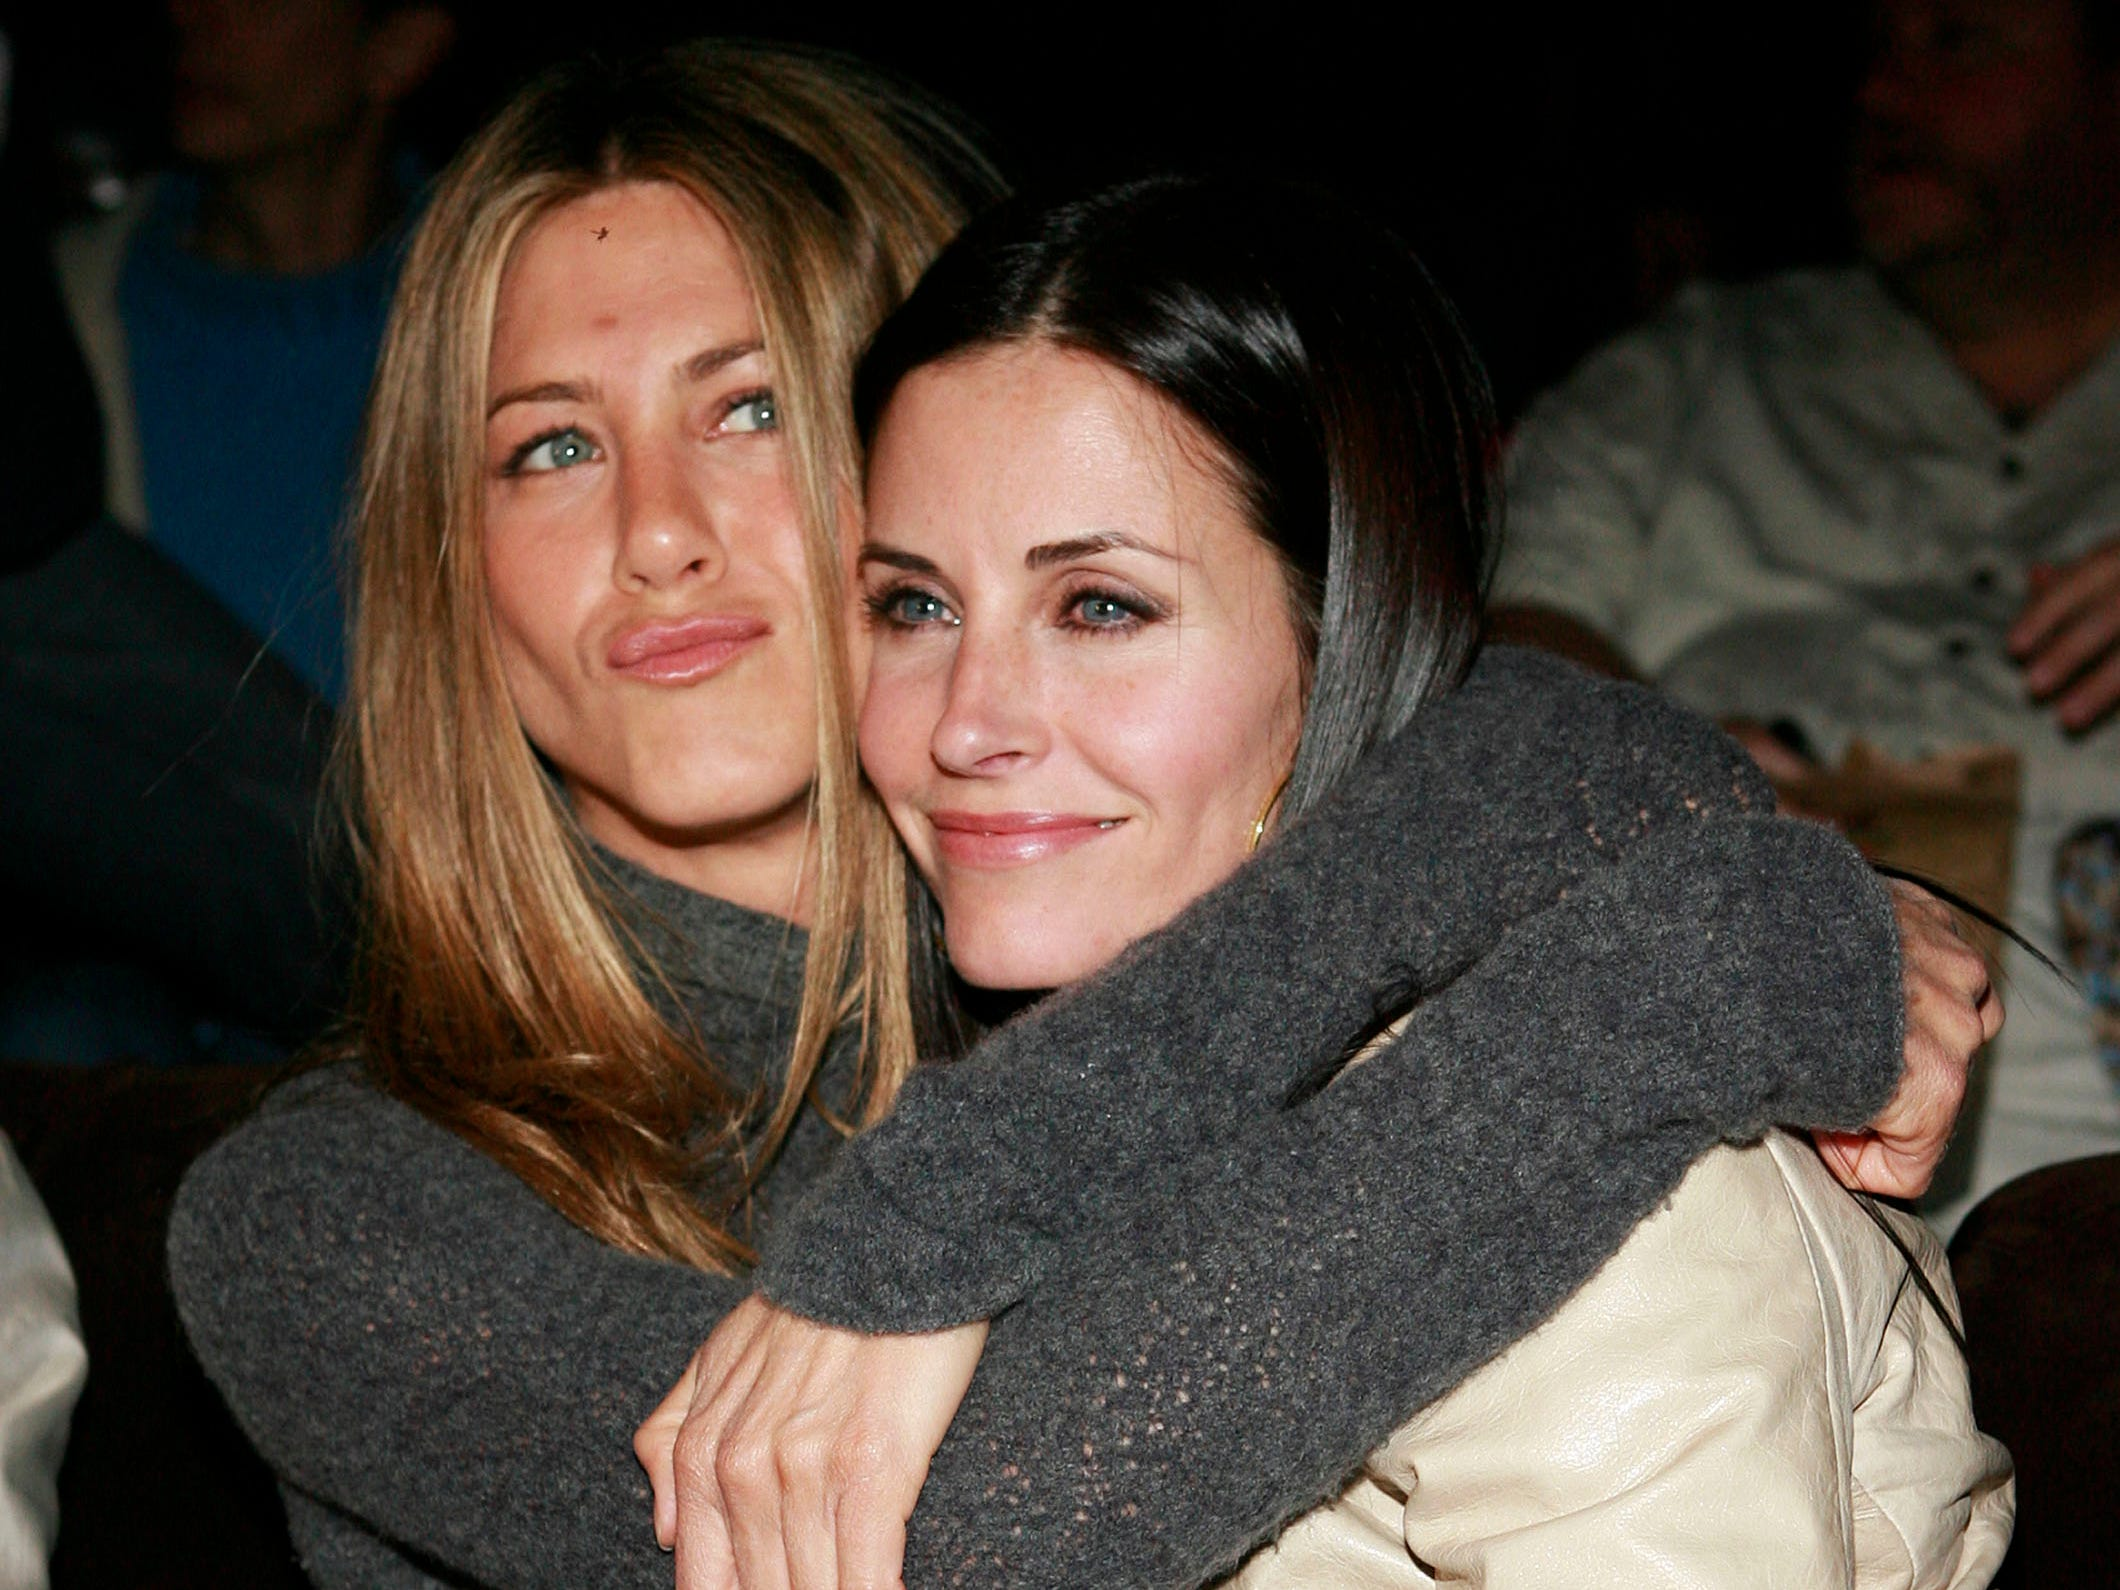 By her side through all of it: her friend, Courteney Cox.